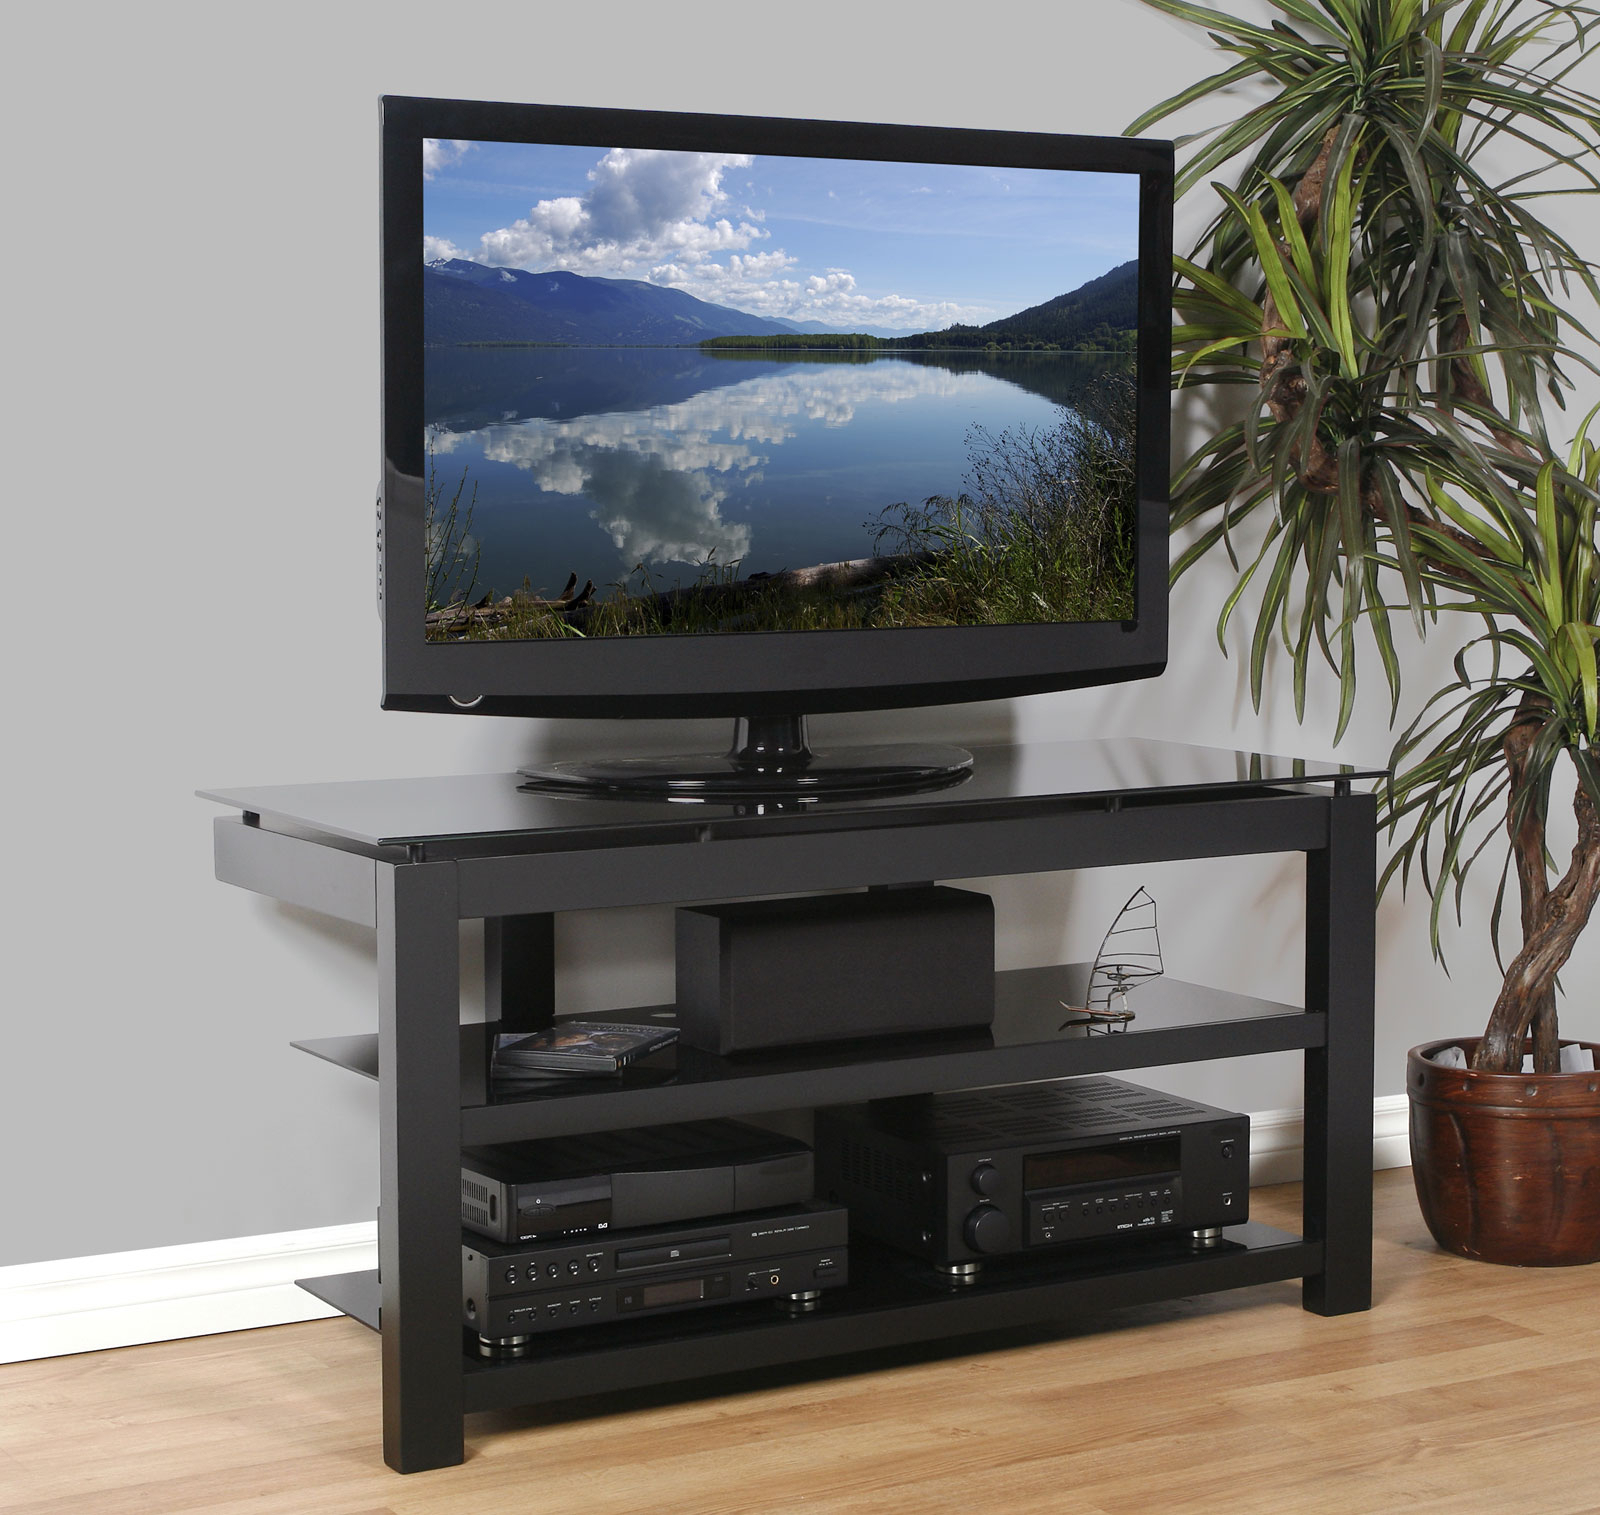 Widely Used Wood Tv Stands With Glass Top Simple Home Designs 1600×1515 In Wood Tv Stands With Glass Top (Gallery 2 of 20)